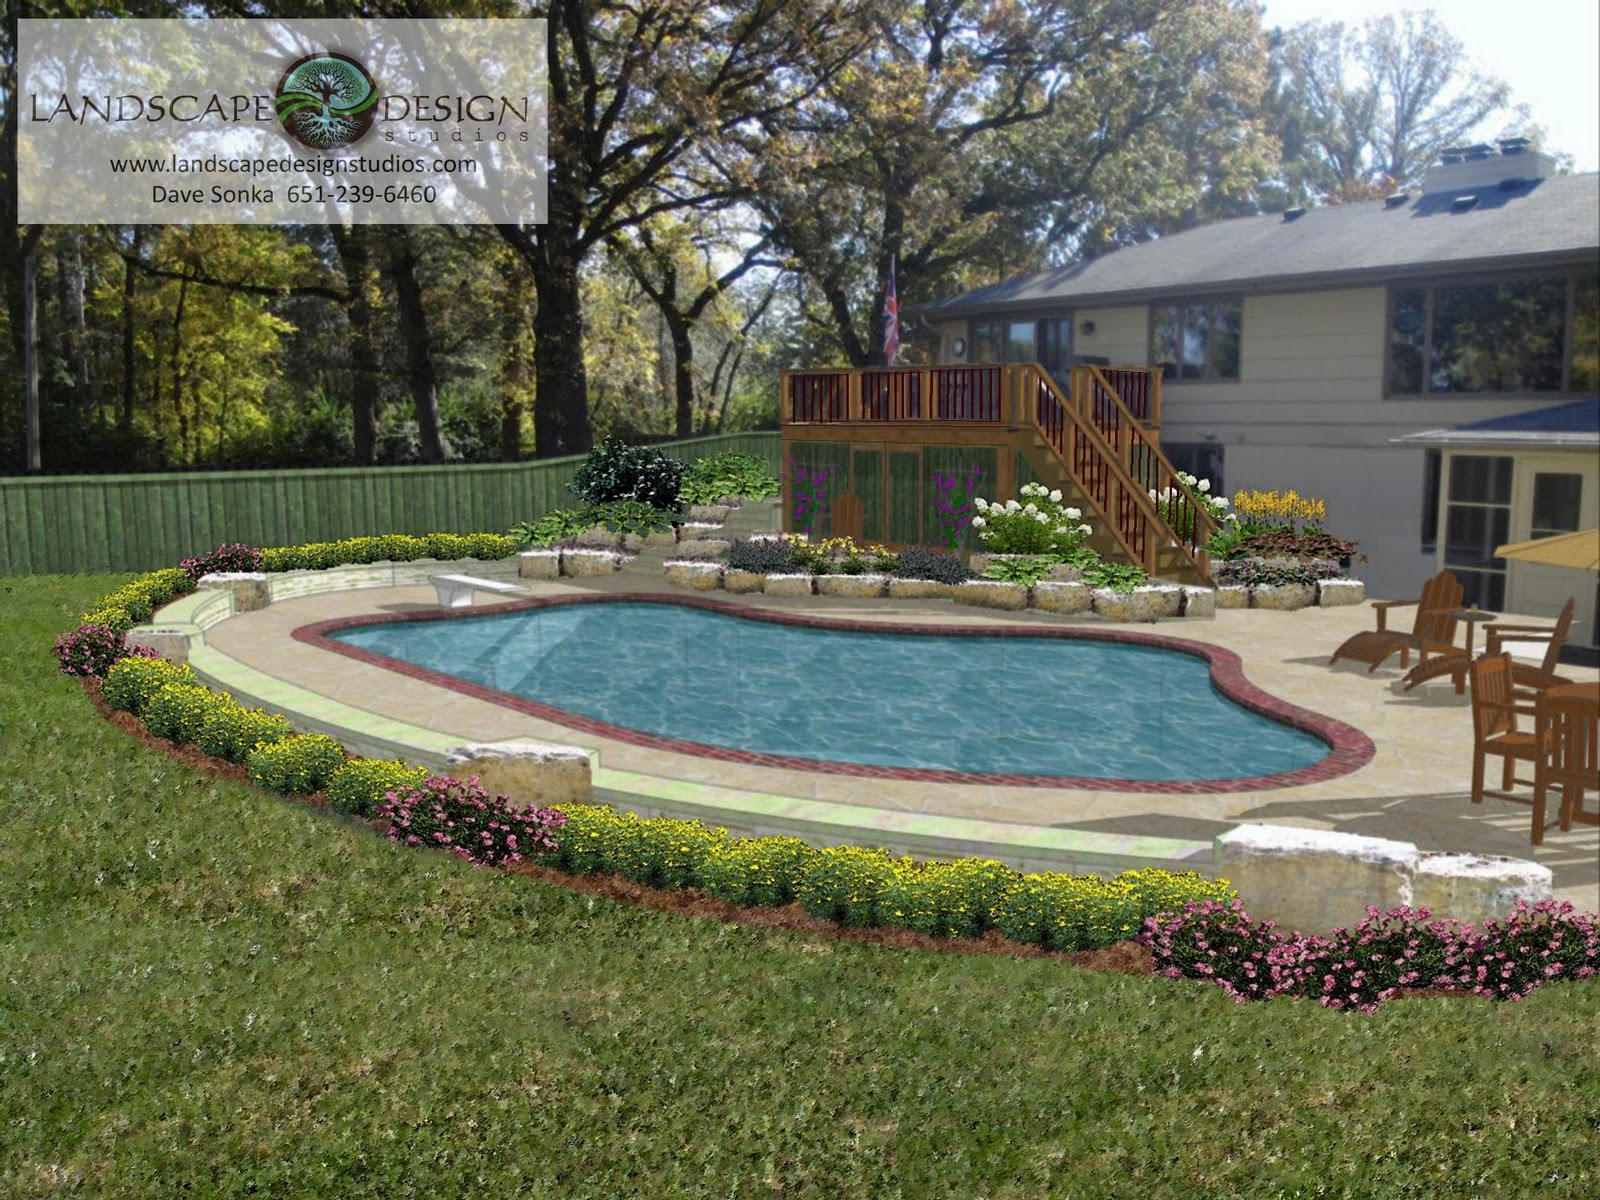 Landscaping area landscaping ideas around spa pools for Garden pool landscaping